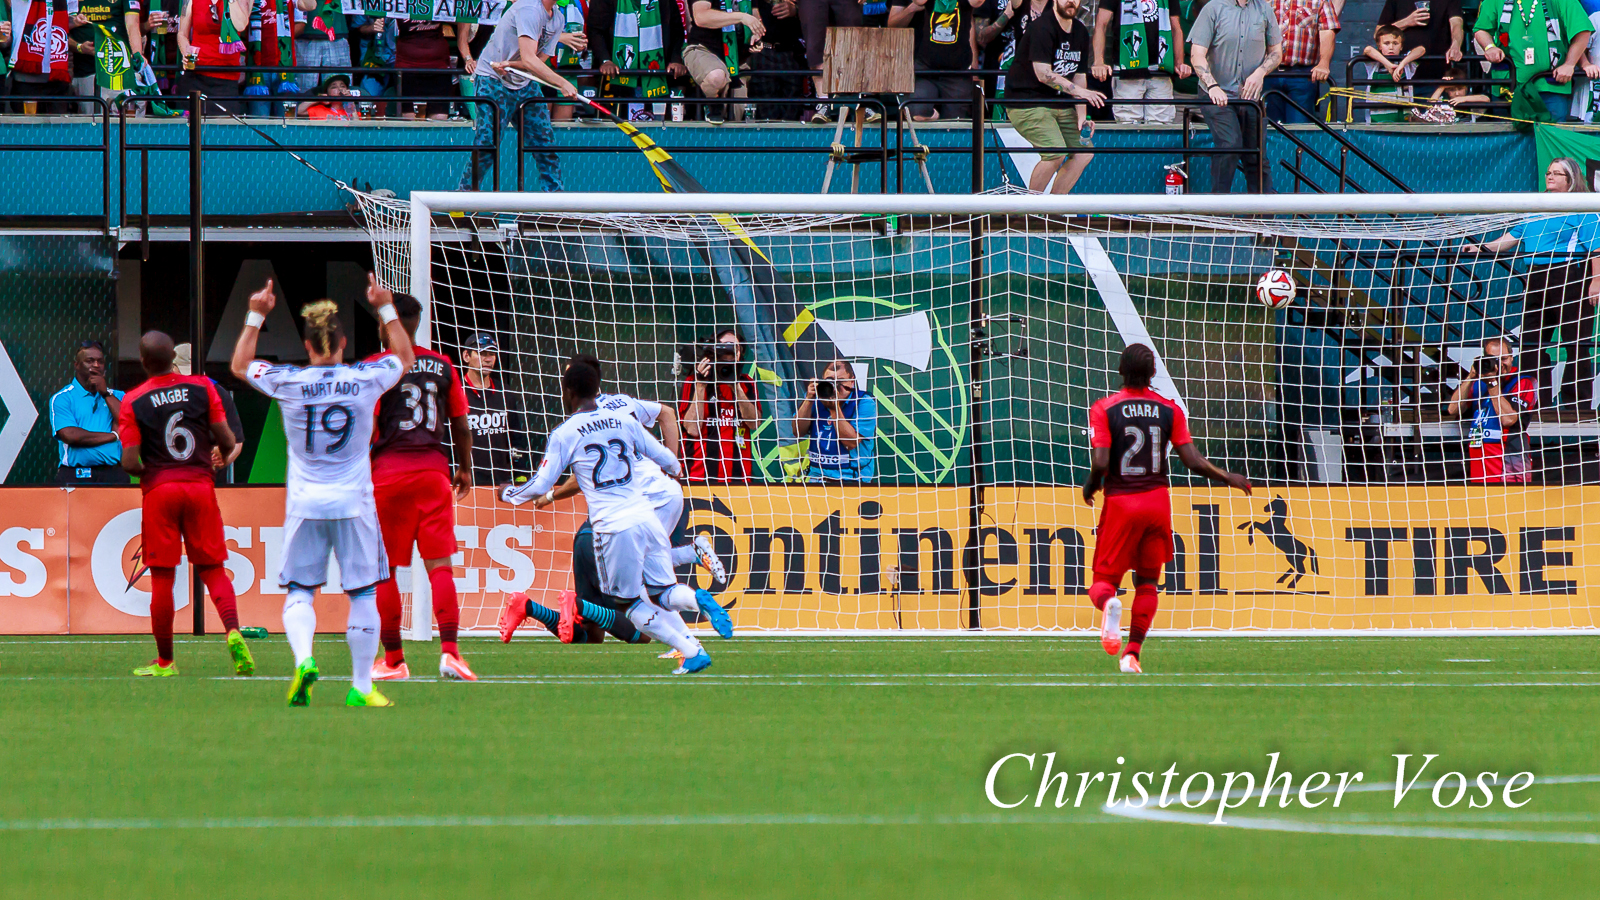 2014-06-01 Pedro Morales First Goal (Penalty Kick).jpg